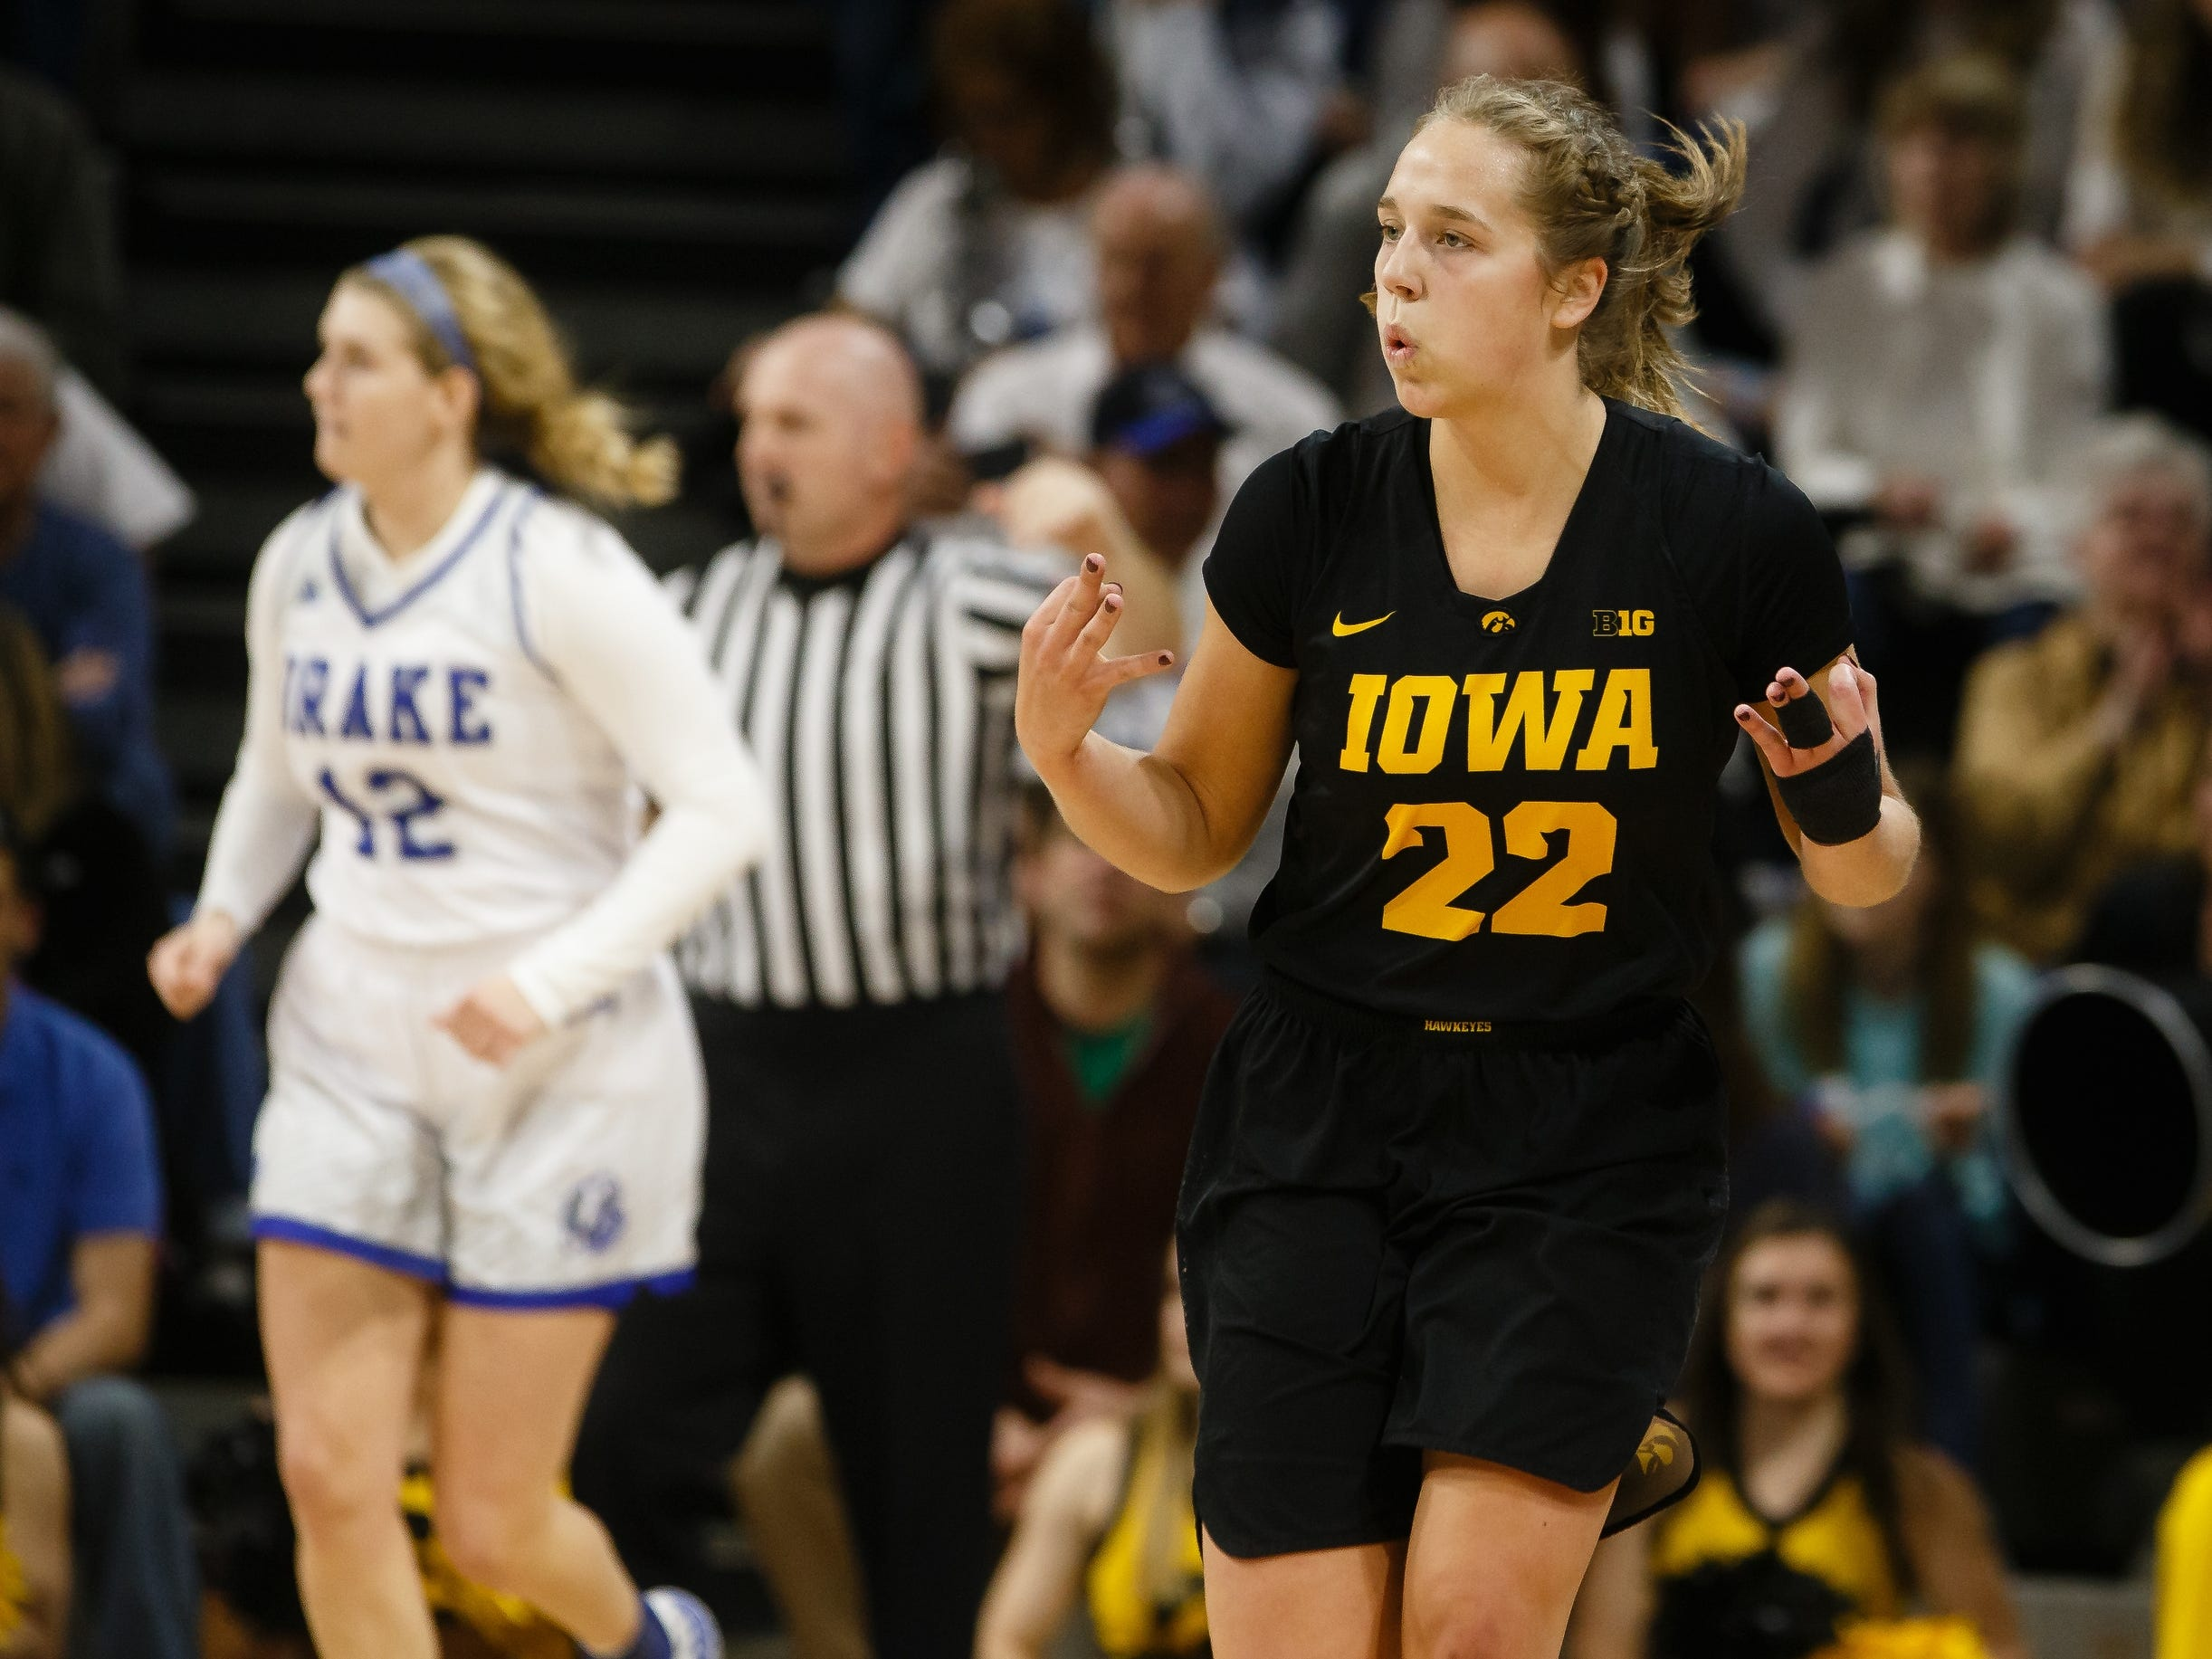 Iowa's Kathleen Doyle (22) celebrates a three-point shot during their basketball game on Friday, Dec. 21, 2018, in Des Moines. Drake takes a 45-43 lead into halftime.